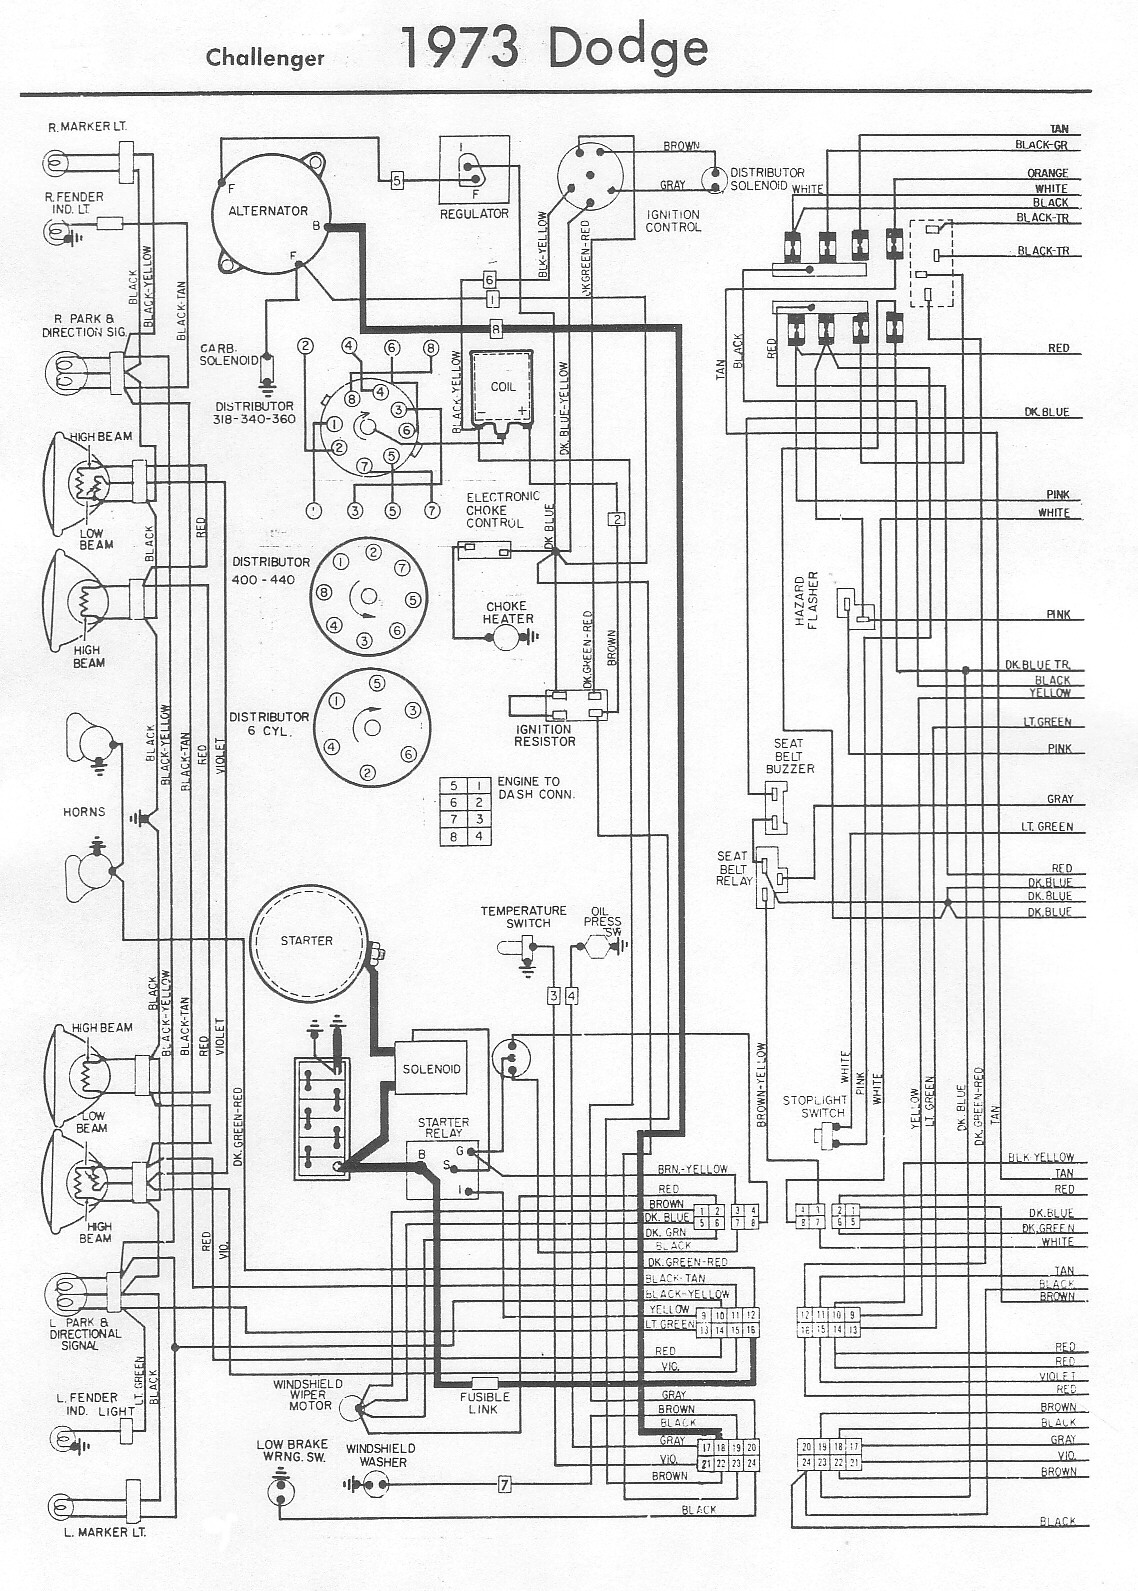 2014 Dodge Challenger Speaker Wiring Diagram Images